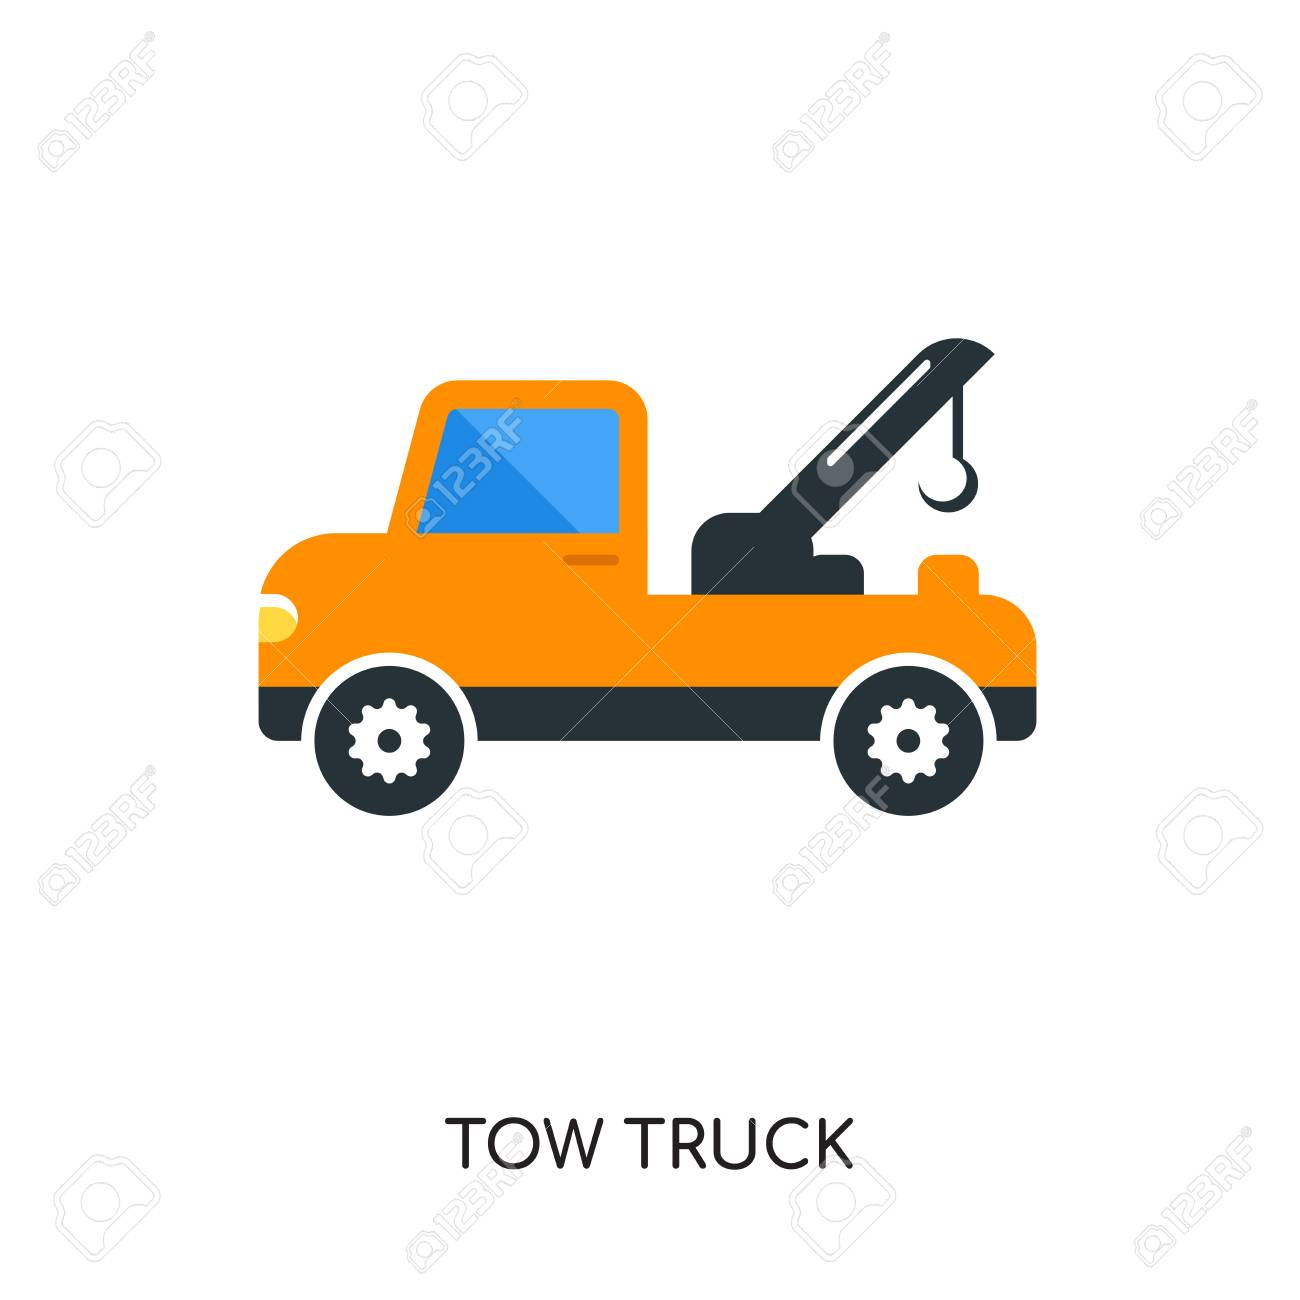 tow truck logo isolated